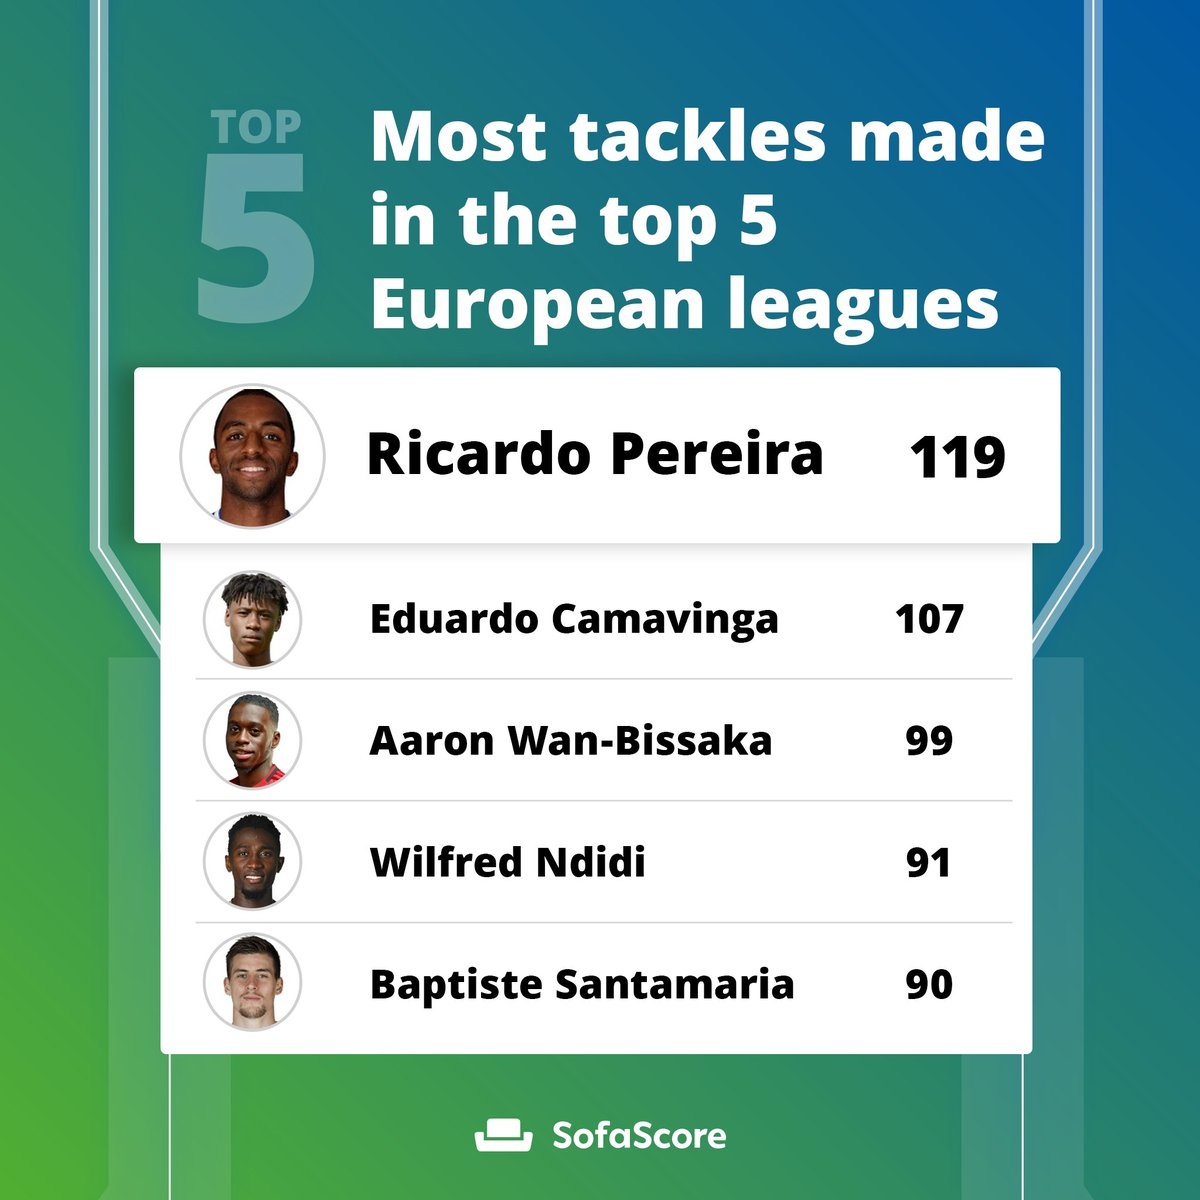 Sofascore On Twitter Analysis We Start Off The Period Of Football Hiatus With The Coverage Of The Basic Categories Across The Top 5 European Leagues The Leading Goalscorer In Europe